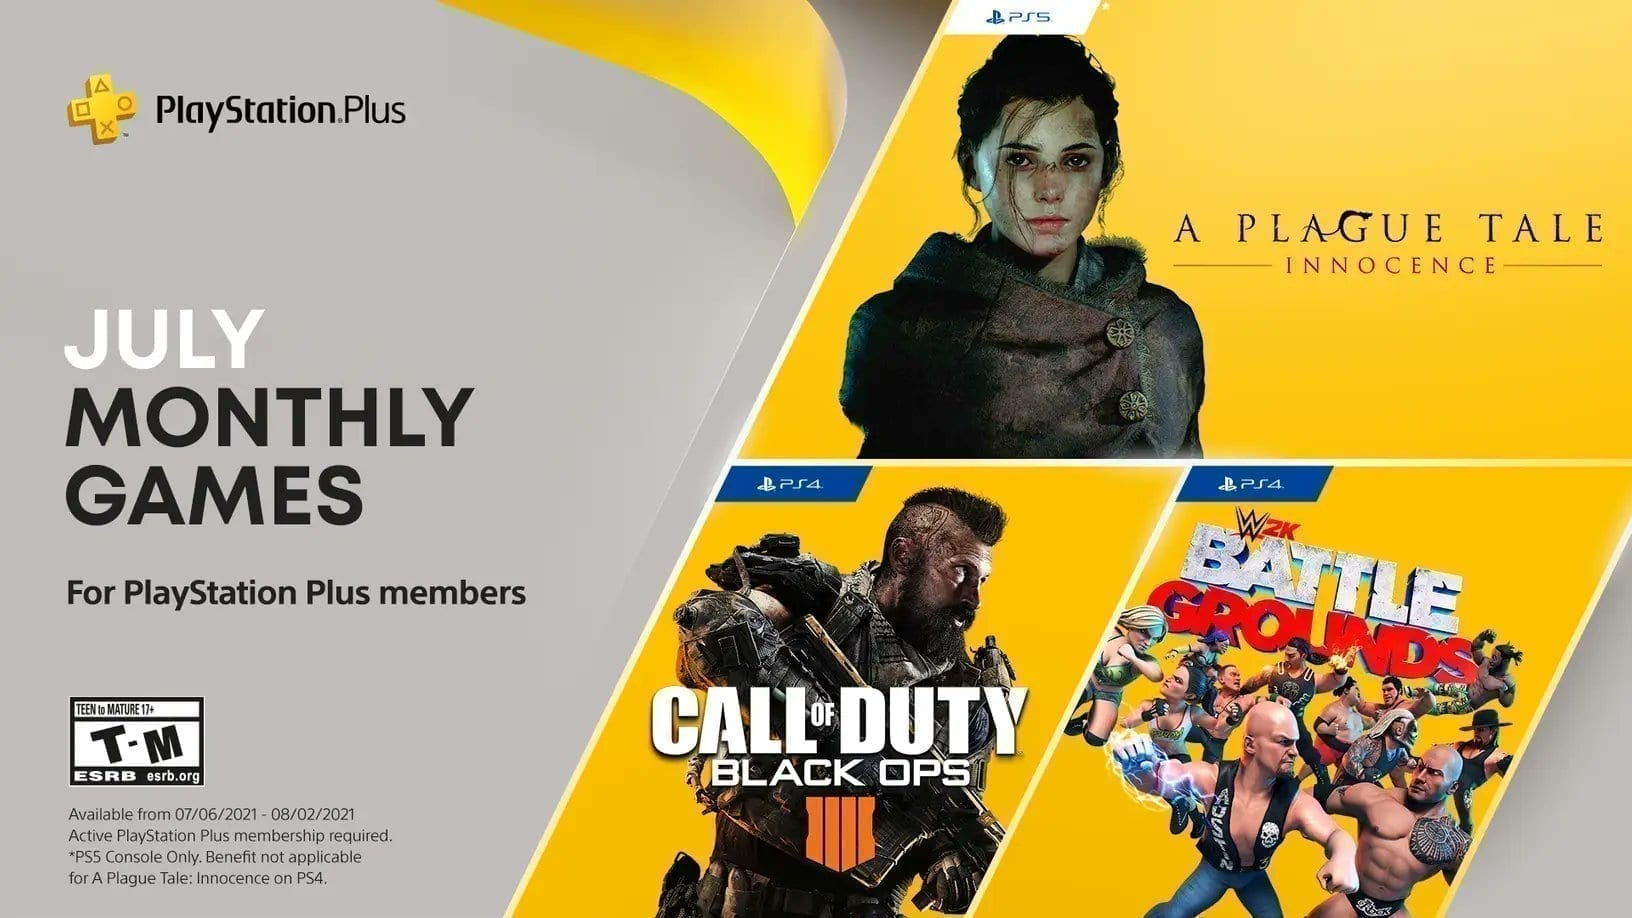 PS Plus games available July 2021, including A Plague Tale: Innocence, Call of Duty Black Ops 4 and WWE 2K Battlegrounds.